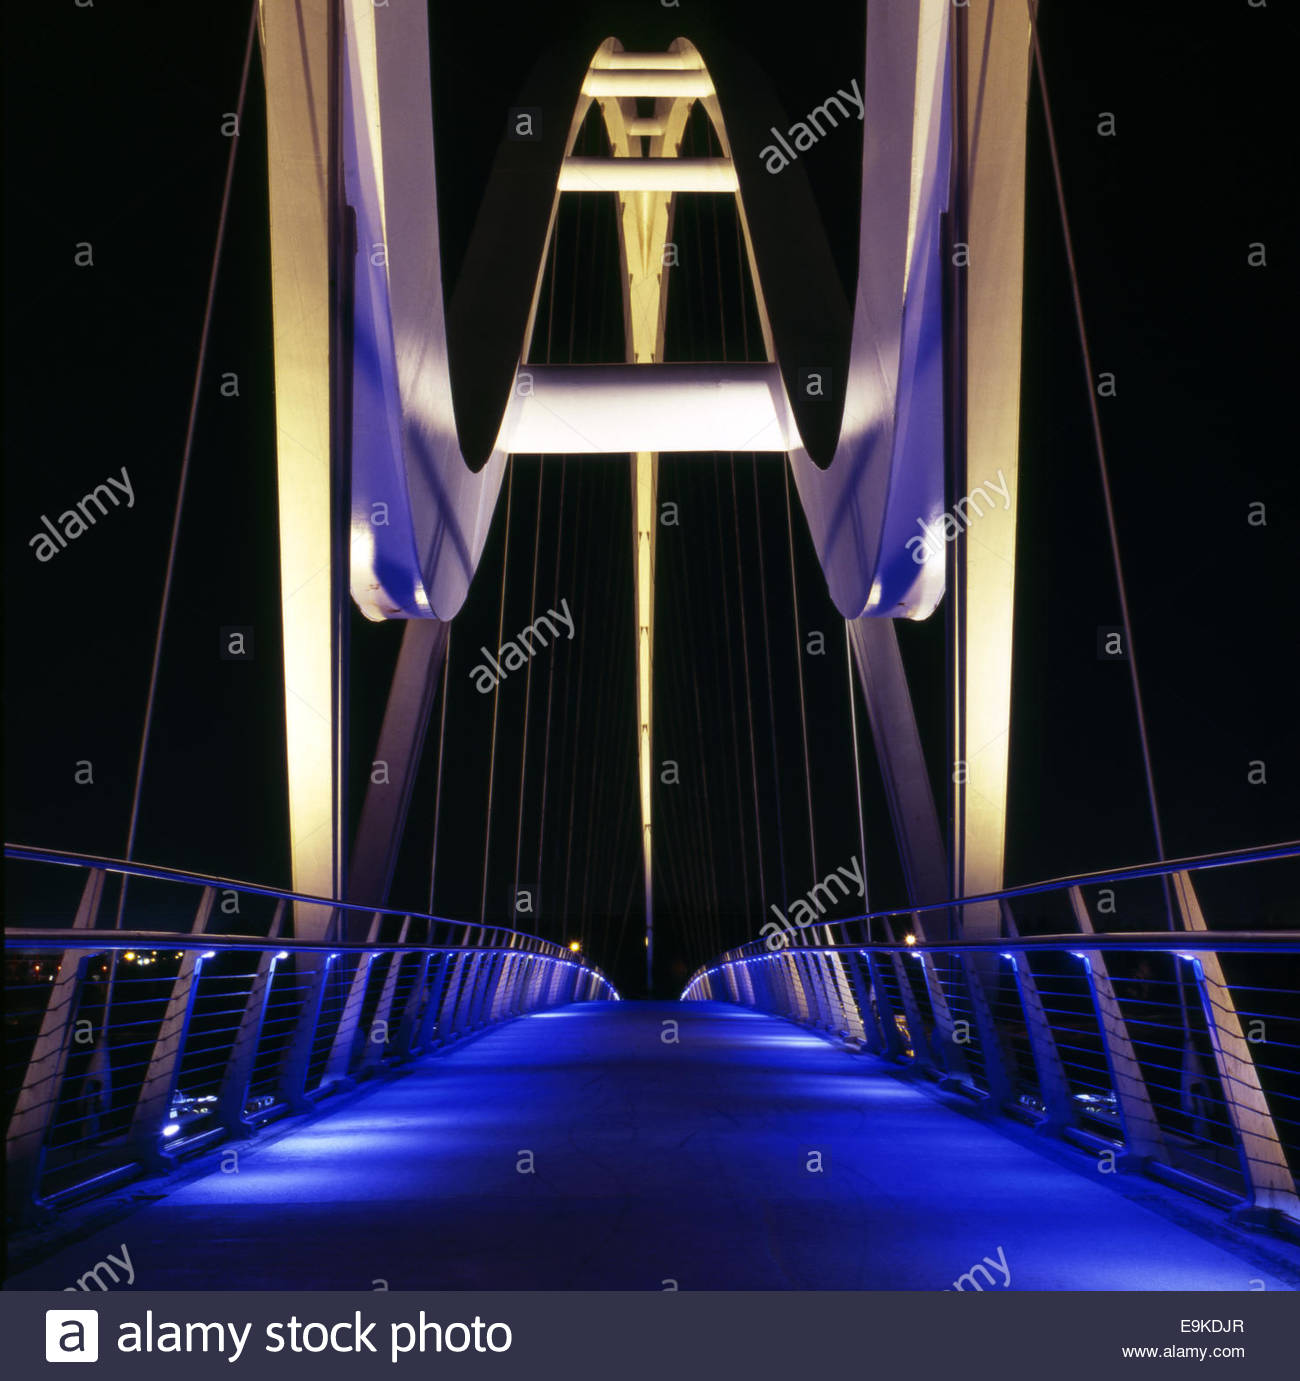 The Infinity Bridge (pedestrian & cyclist route) at night, across the River Tees, in Stockton-on-Tees, UK. Stock Photo